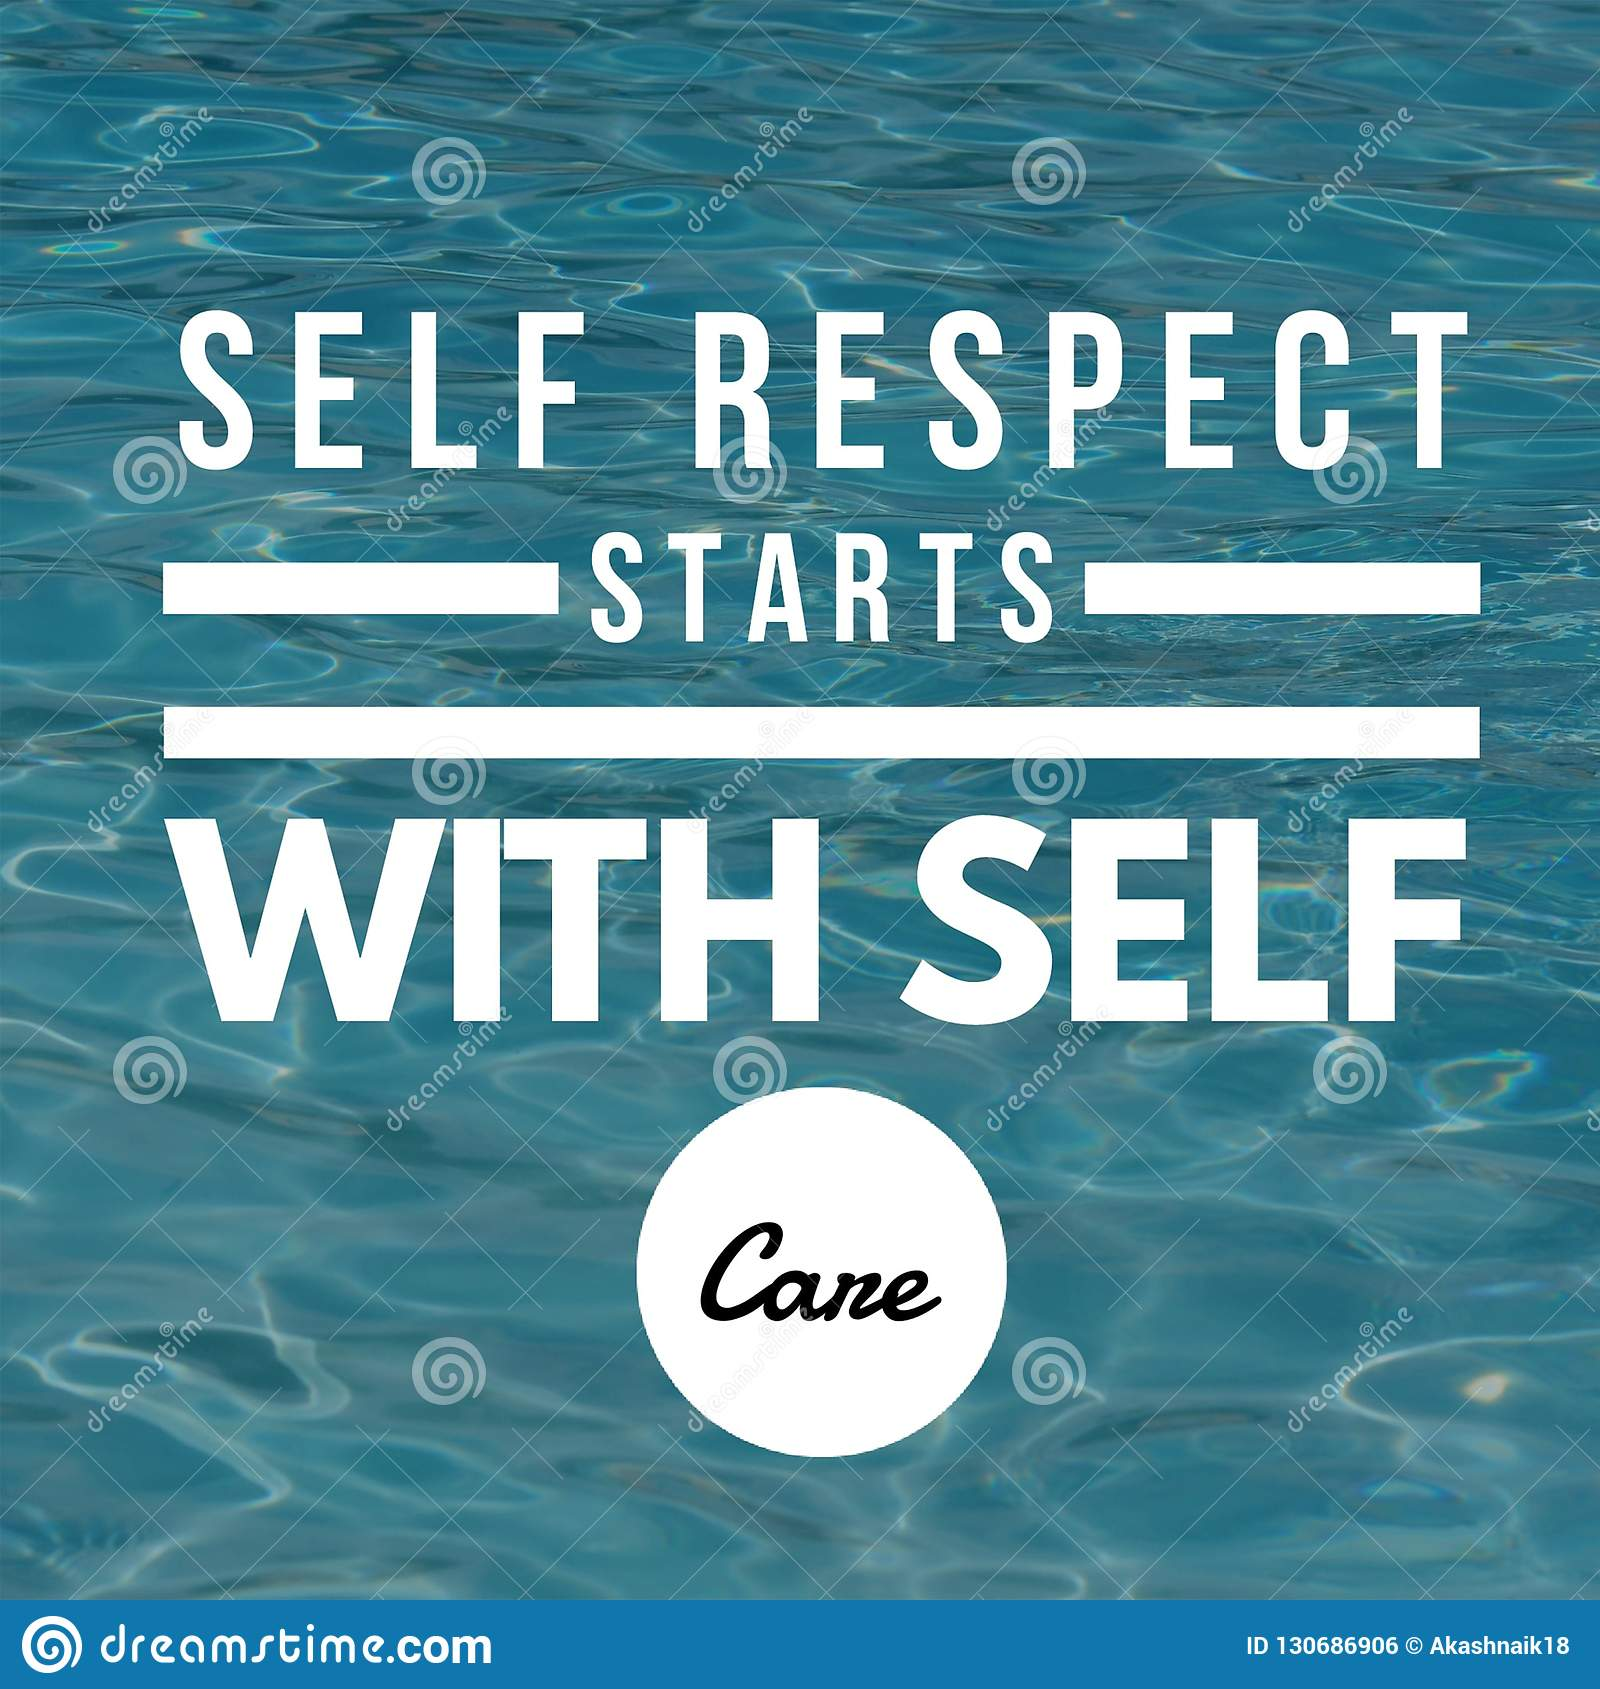 Inspirational Quotes Self Respect Starts With Self Care Stock